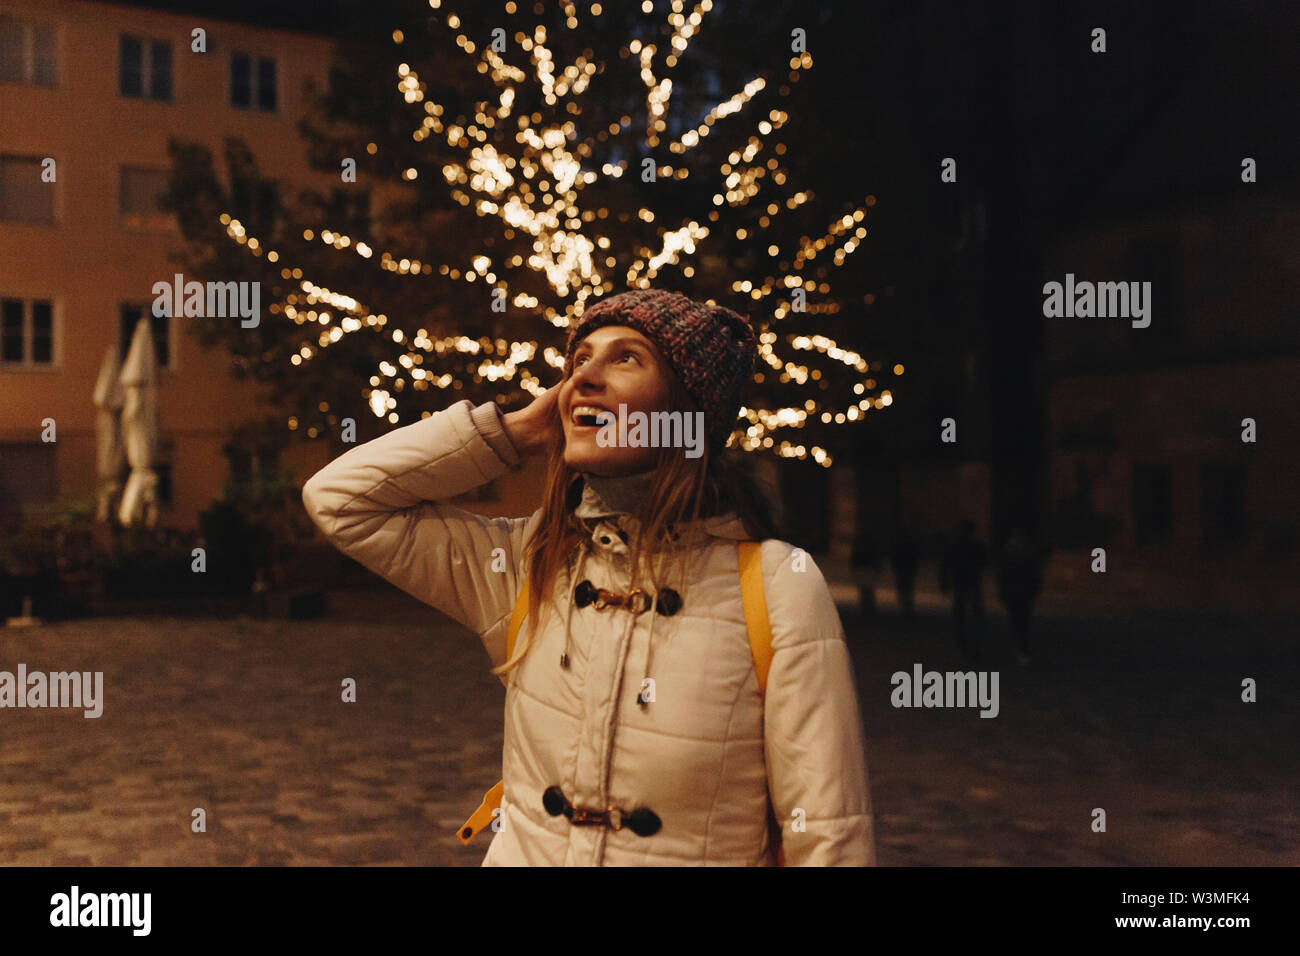 Smiling woman wearing coat by fairy lights in tree at night - Stock Image